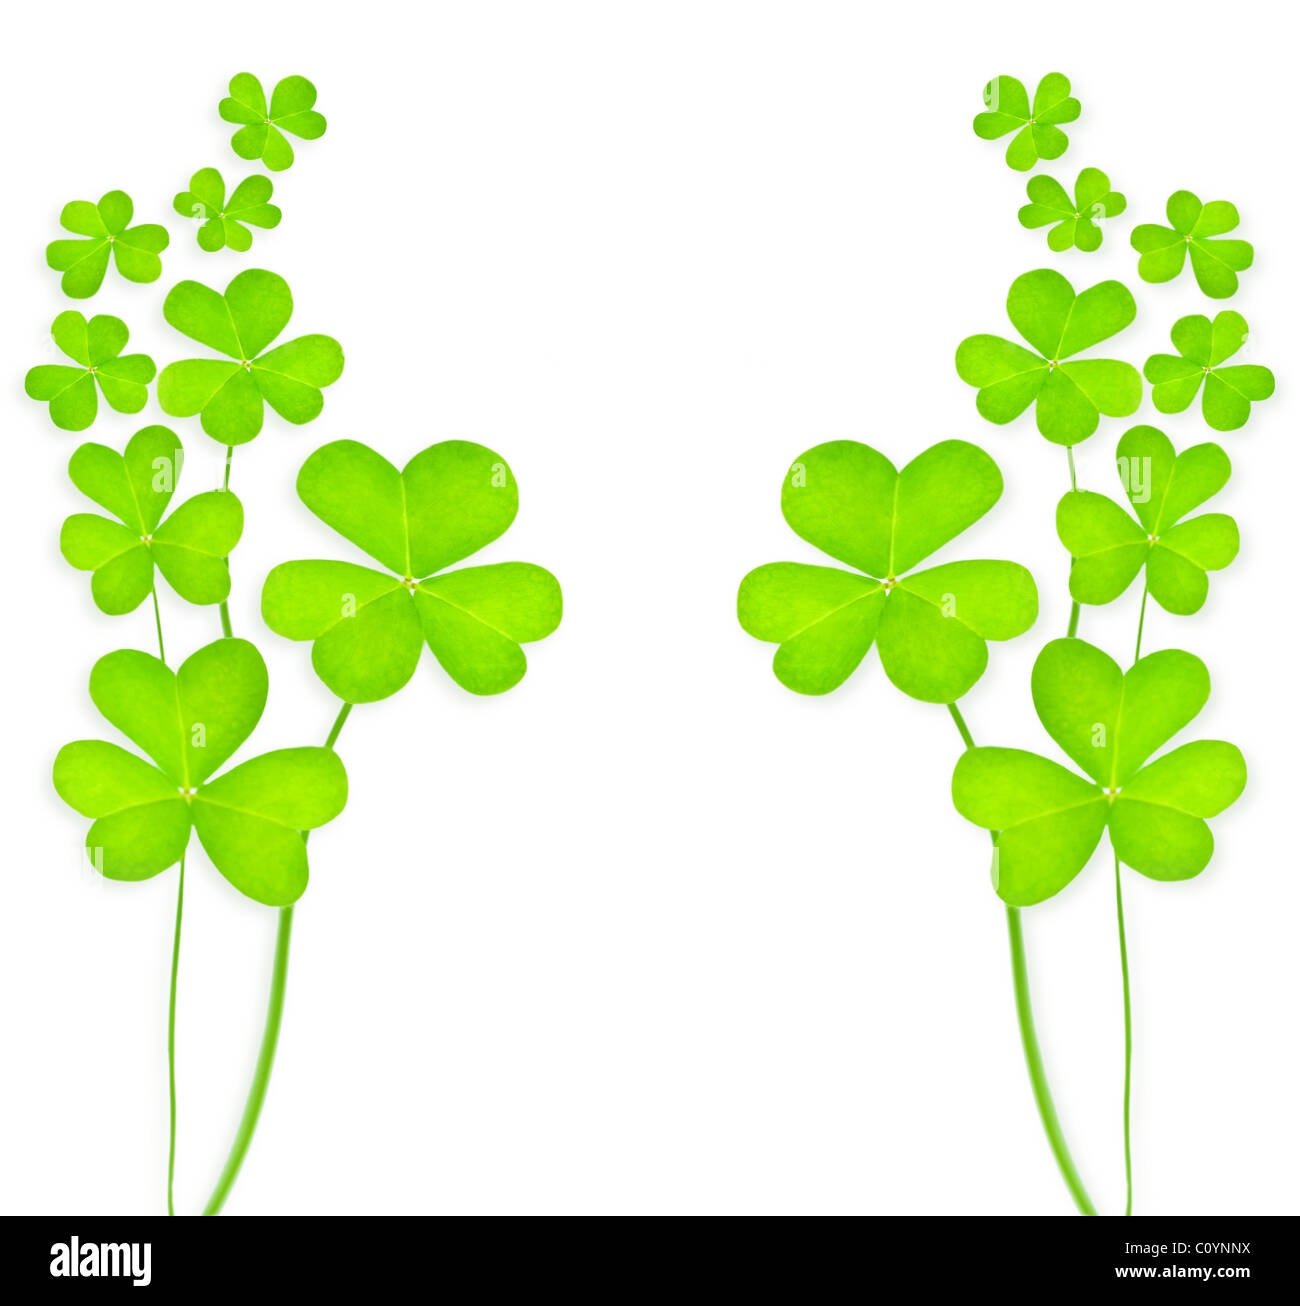 Green Clover Holiday Background Collage Imágenes De Stock & Green ...